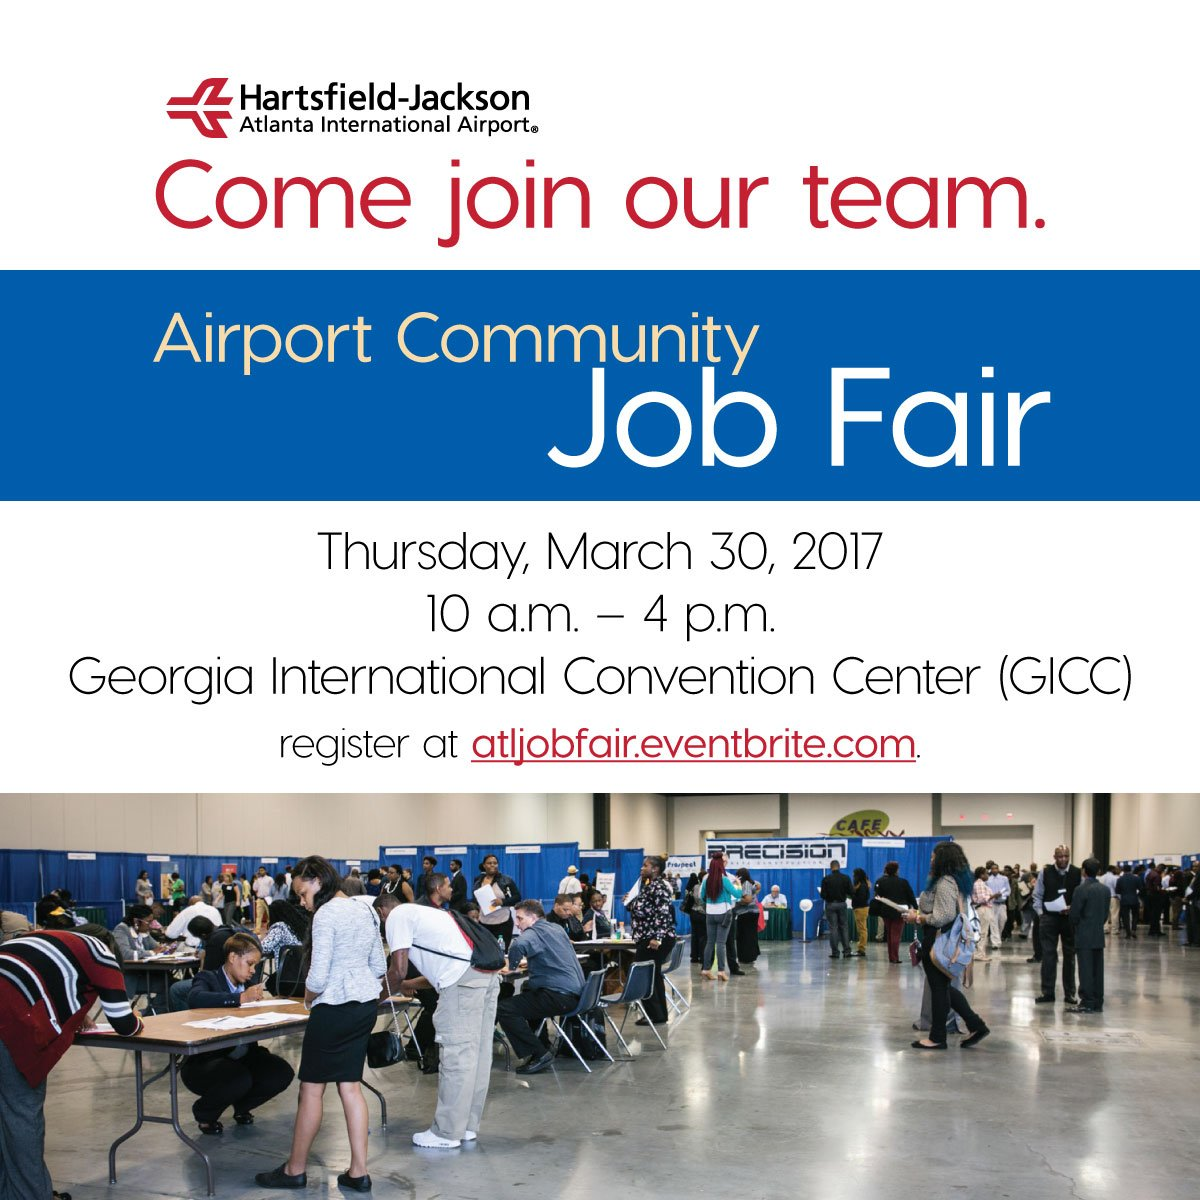 atlanta airport on twitter today join us at our first job fair of 2017 with 1 000 positions up for grabs be part of the team at the world s busiest